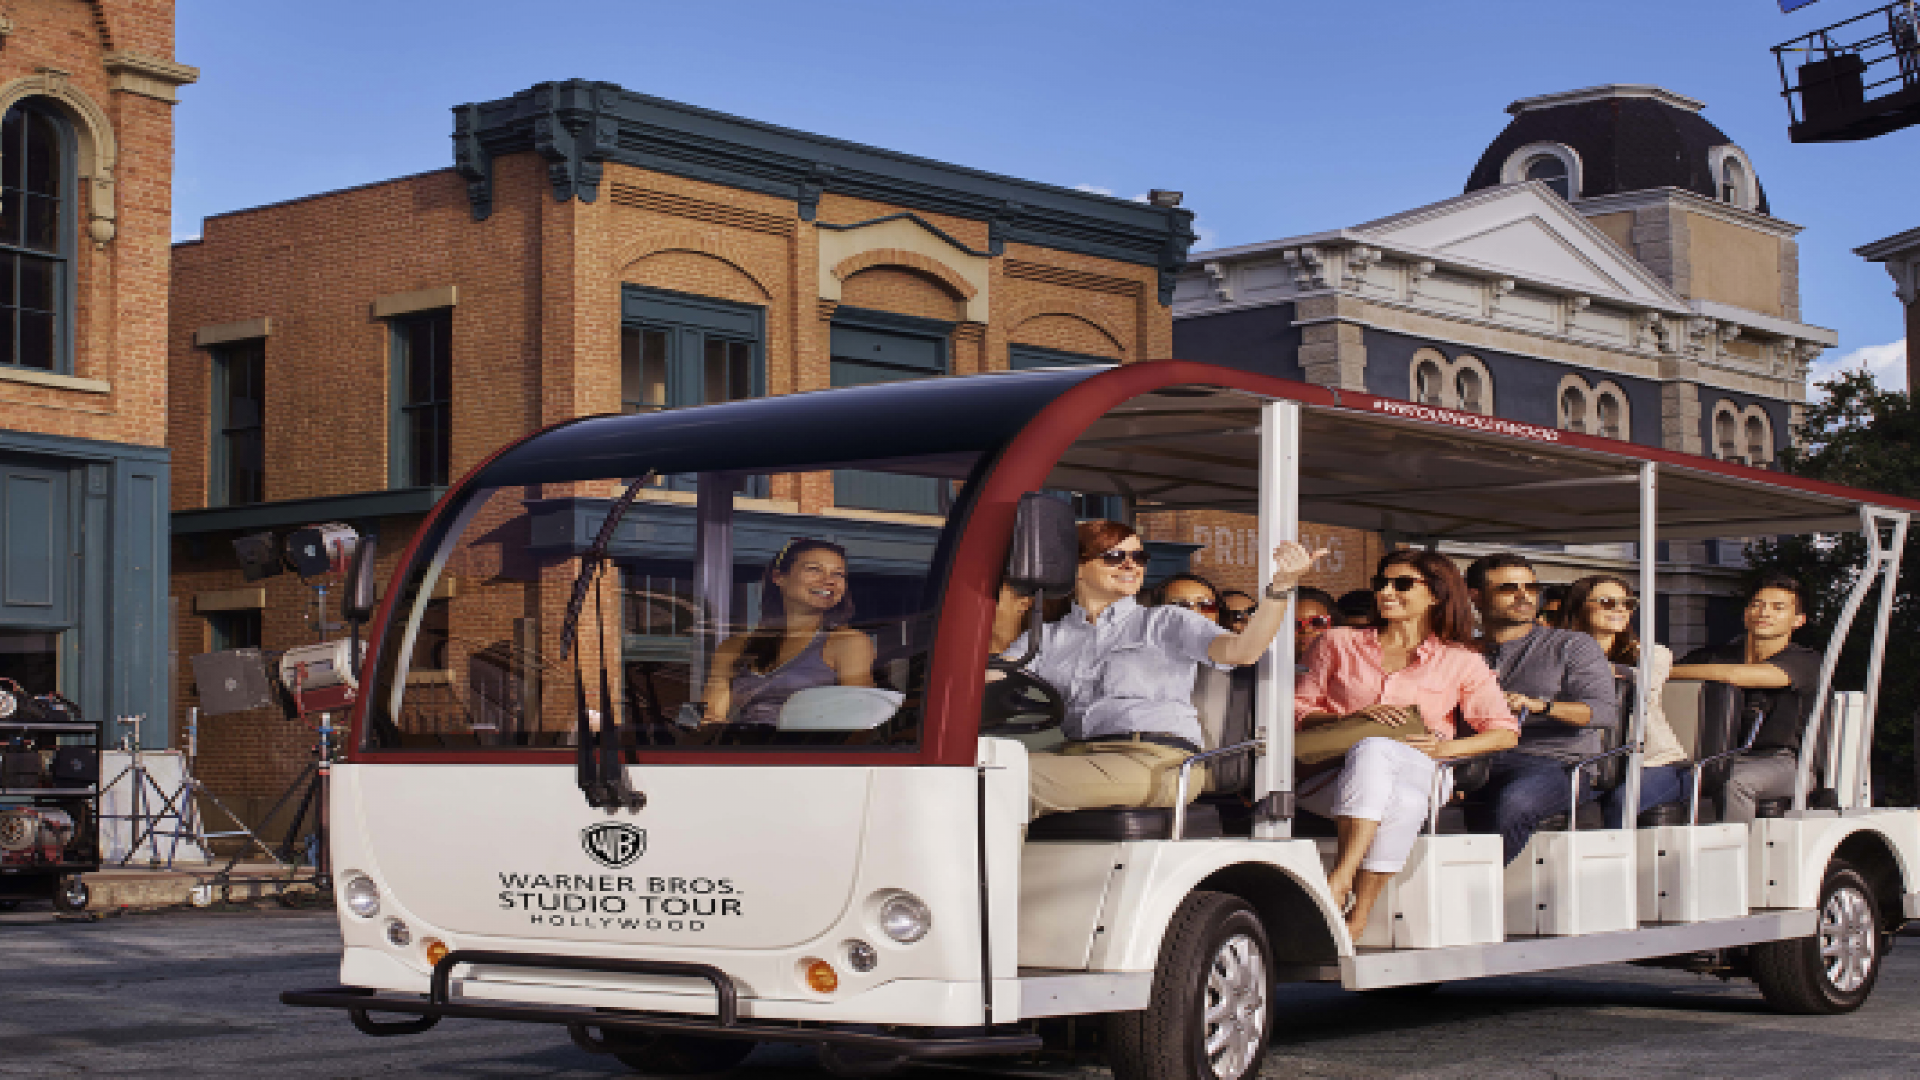 Warner Brothers Studio Tour with Hotel Transfers - Alojamientos en Los Ángeles